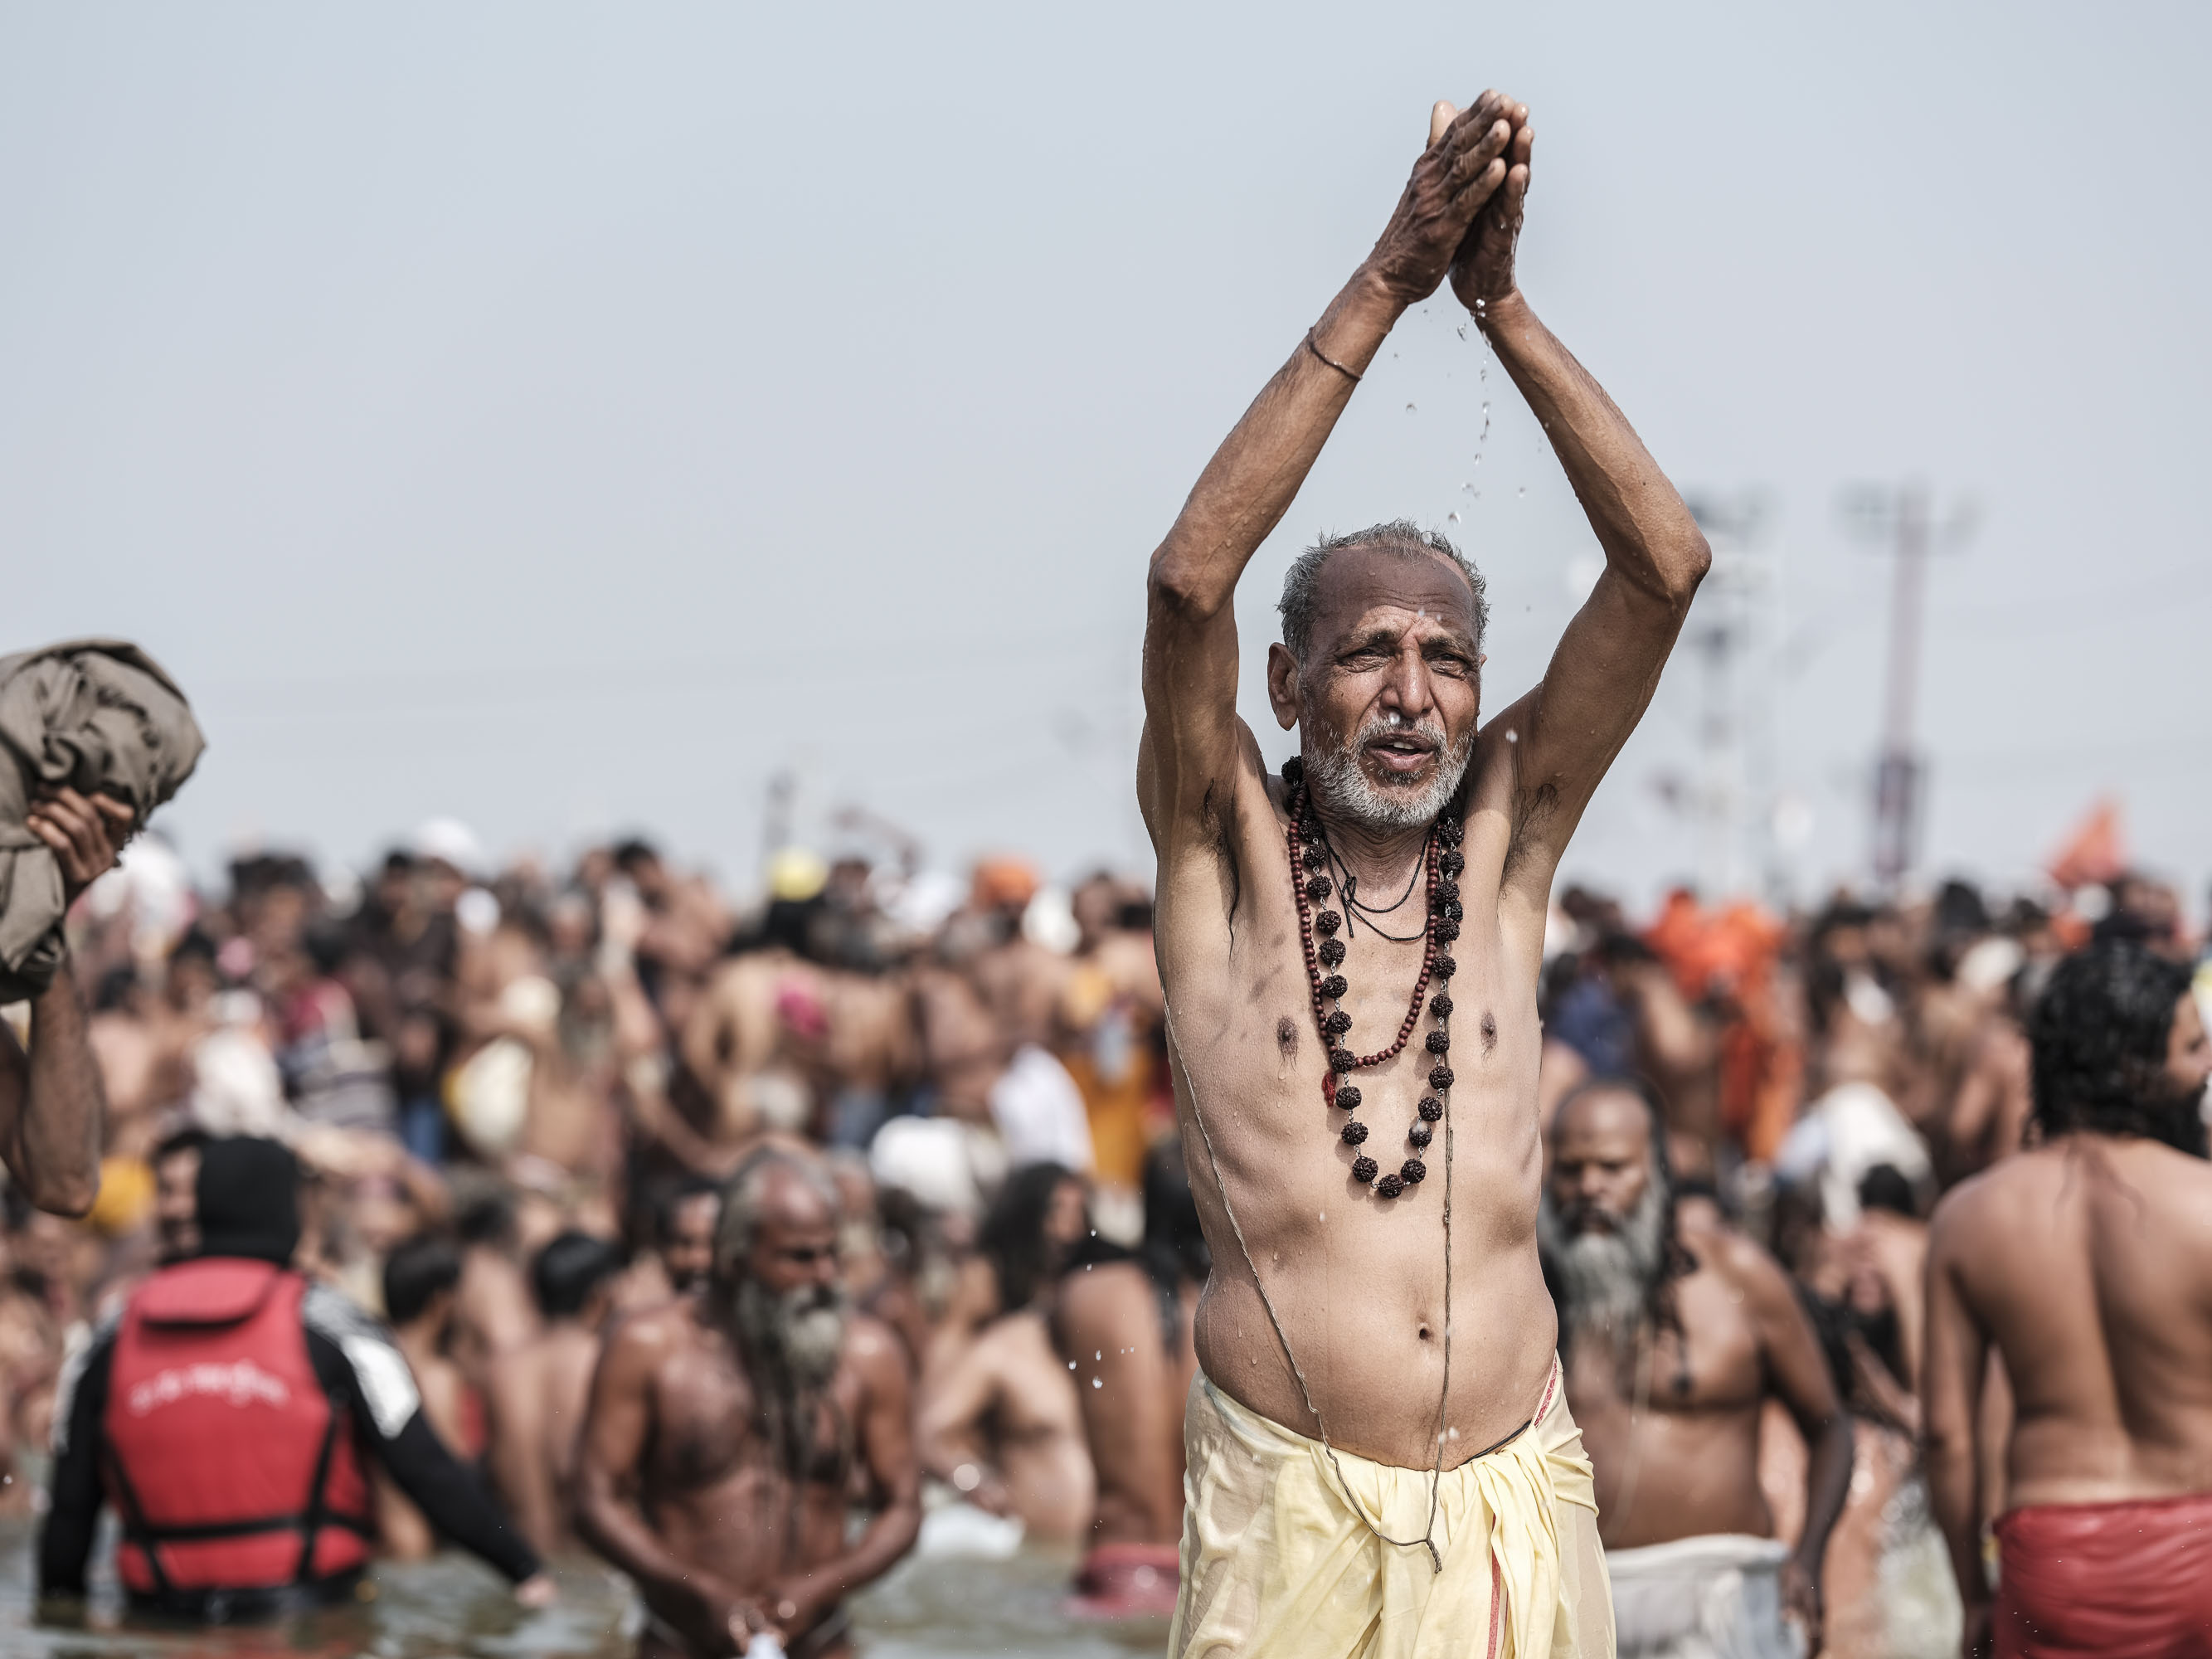 man prayer 4 february pilgrims Kumbh mela 2019 India Allahabad Prayagraj Ardh hindu religious Festival event rivers photographer jose jeuland photography